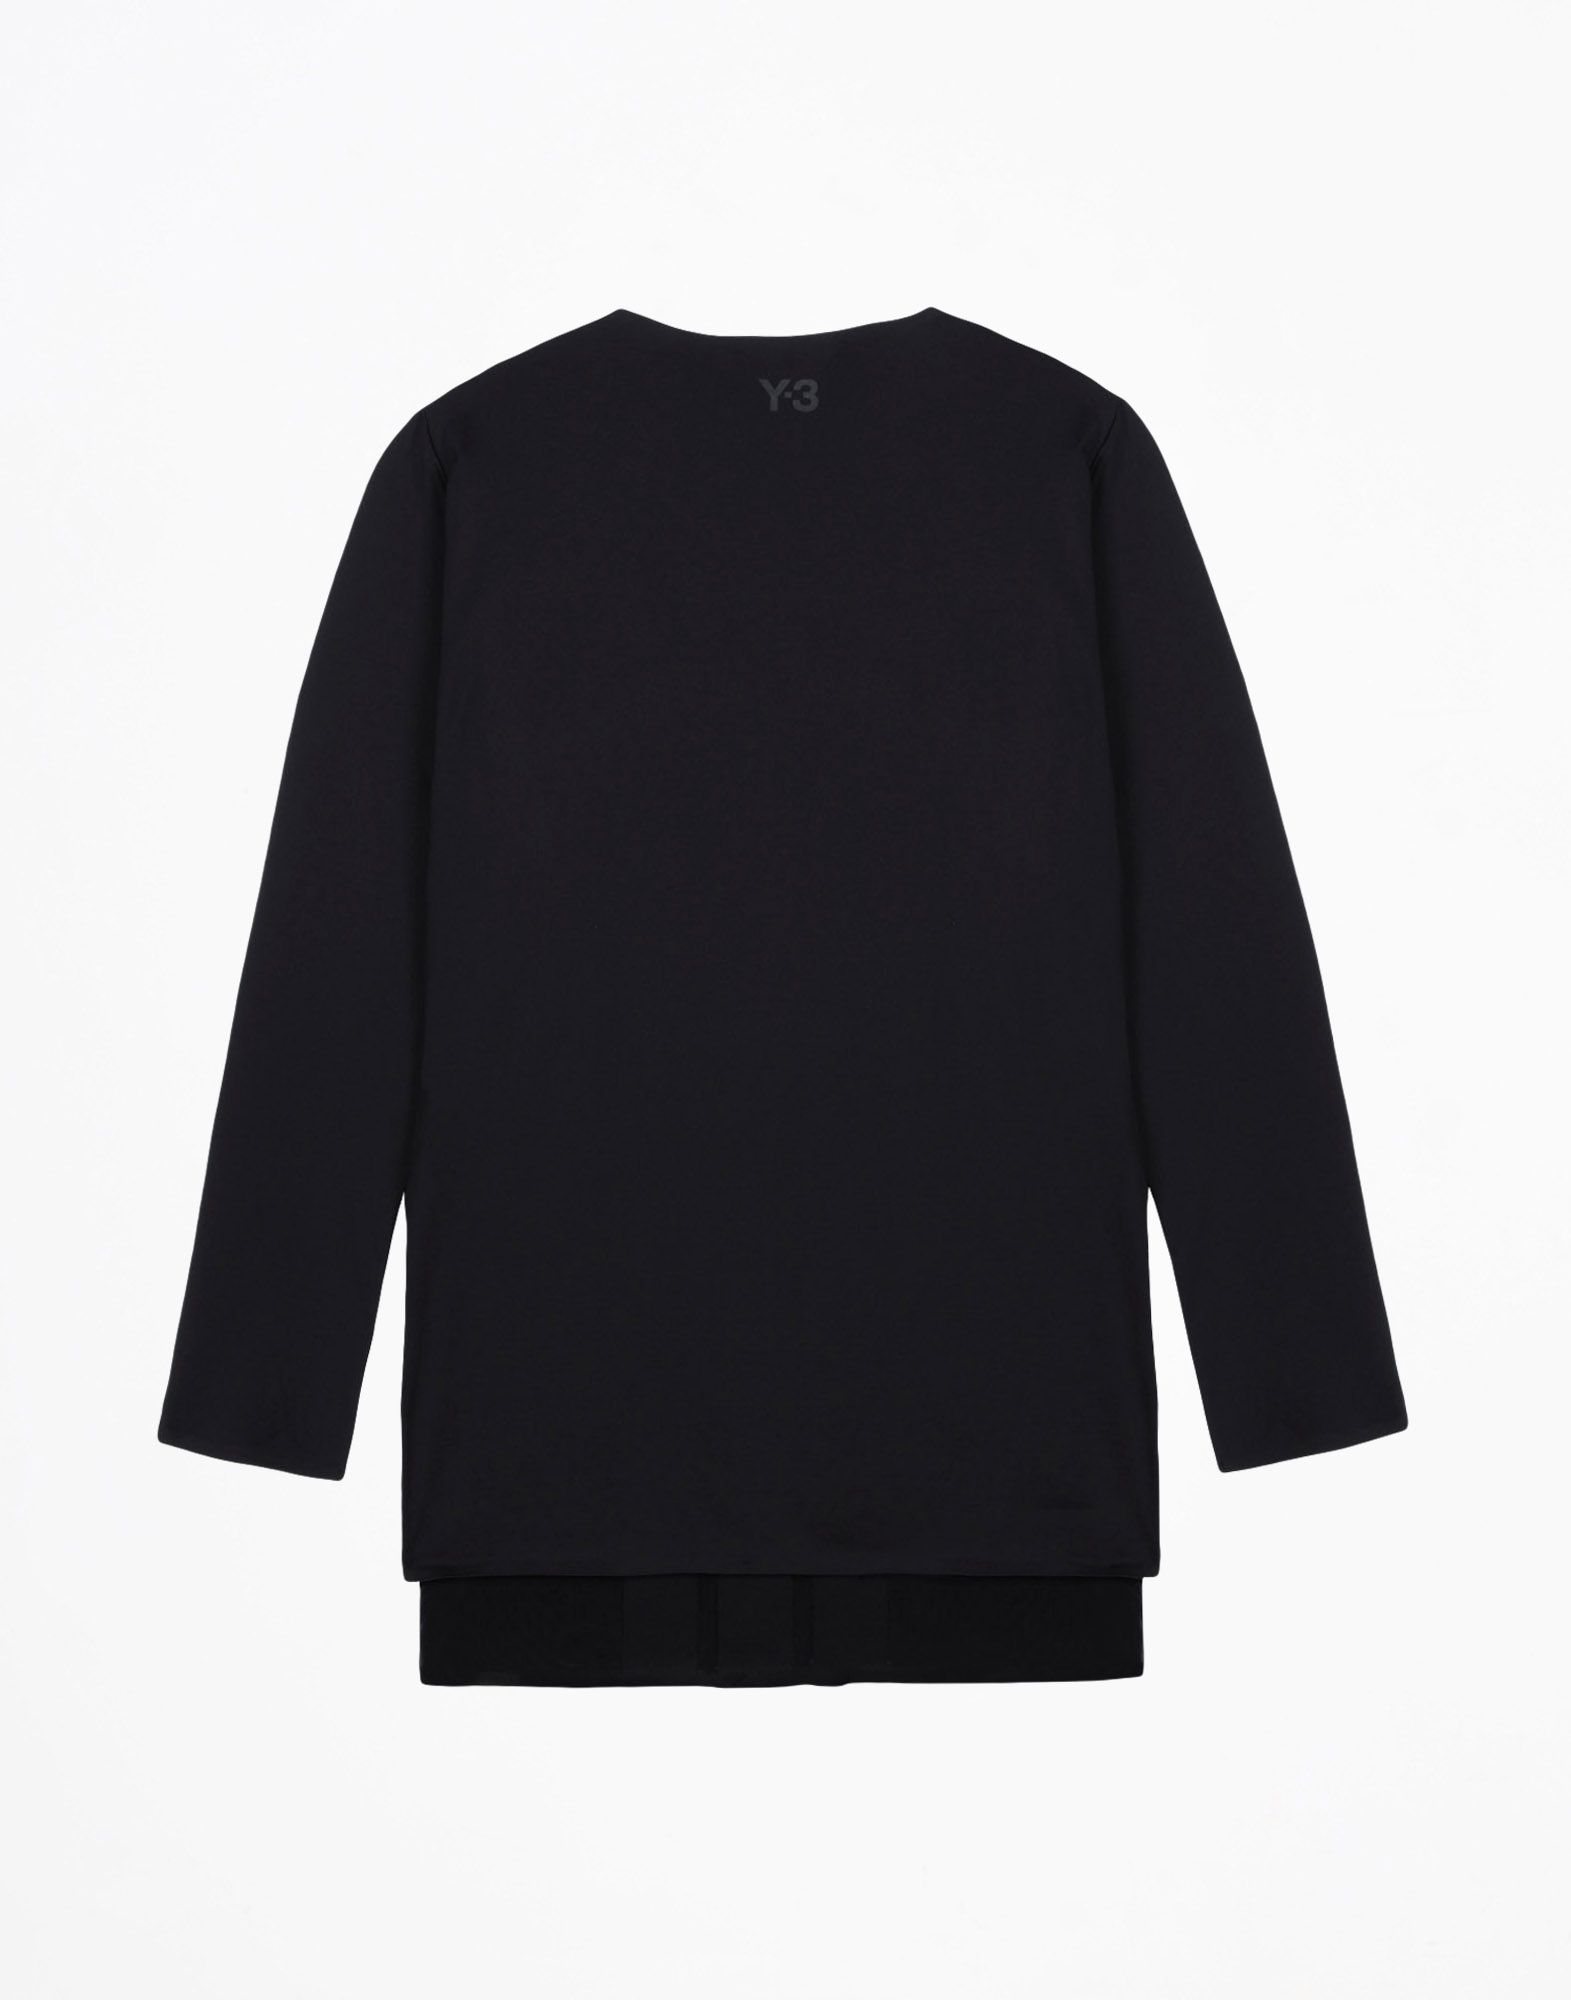 Y-3 LUX FT PURE LS TEE TEES & POLOS unisex Y-3 adidas